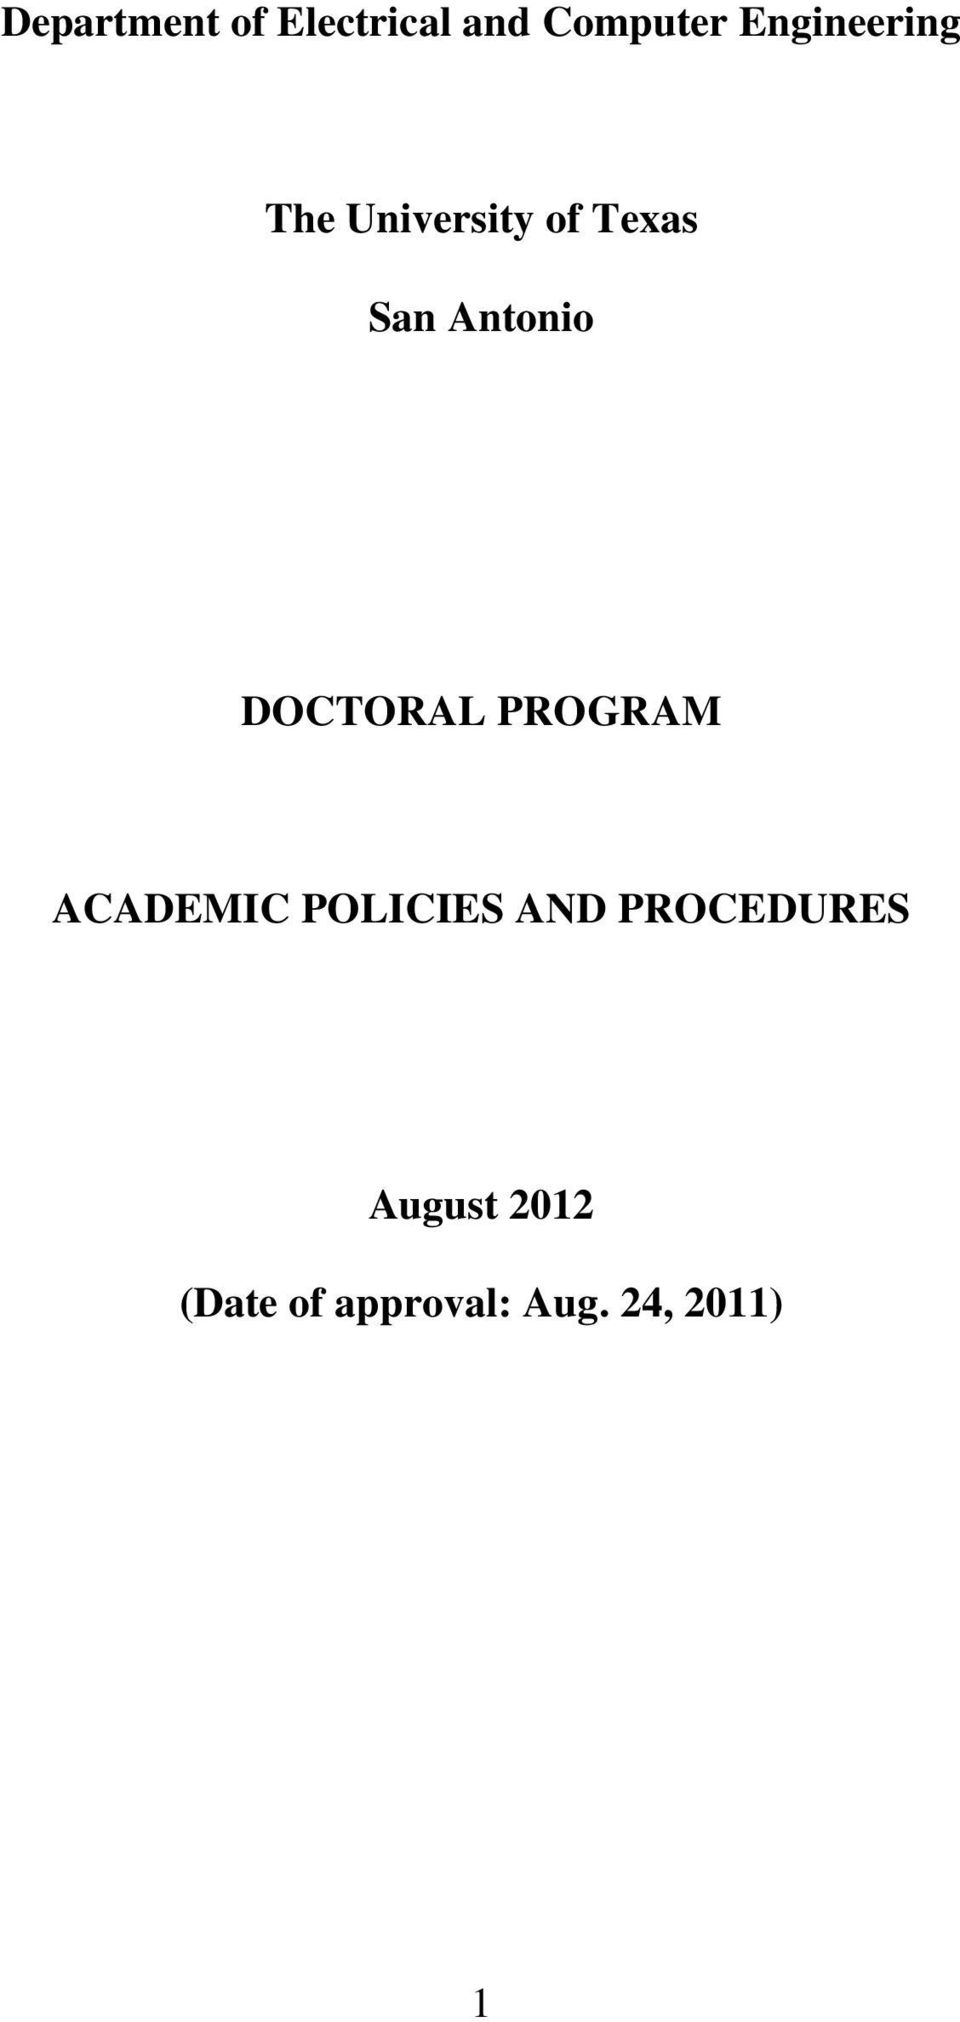 Antonio DOCTORAL PROGRAM ACADEMIC POLICIES